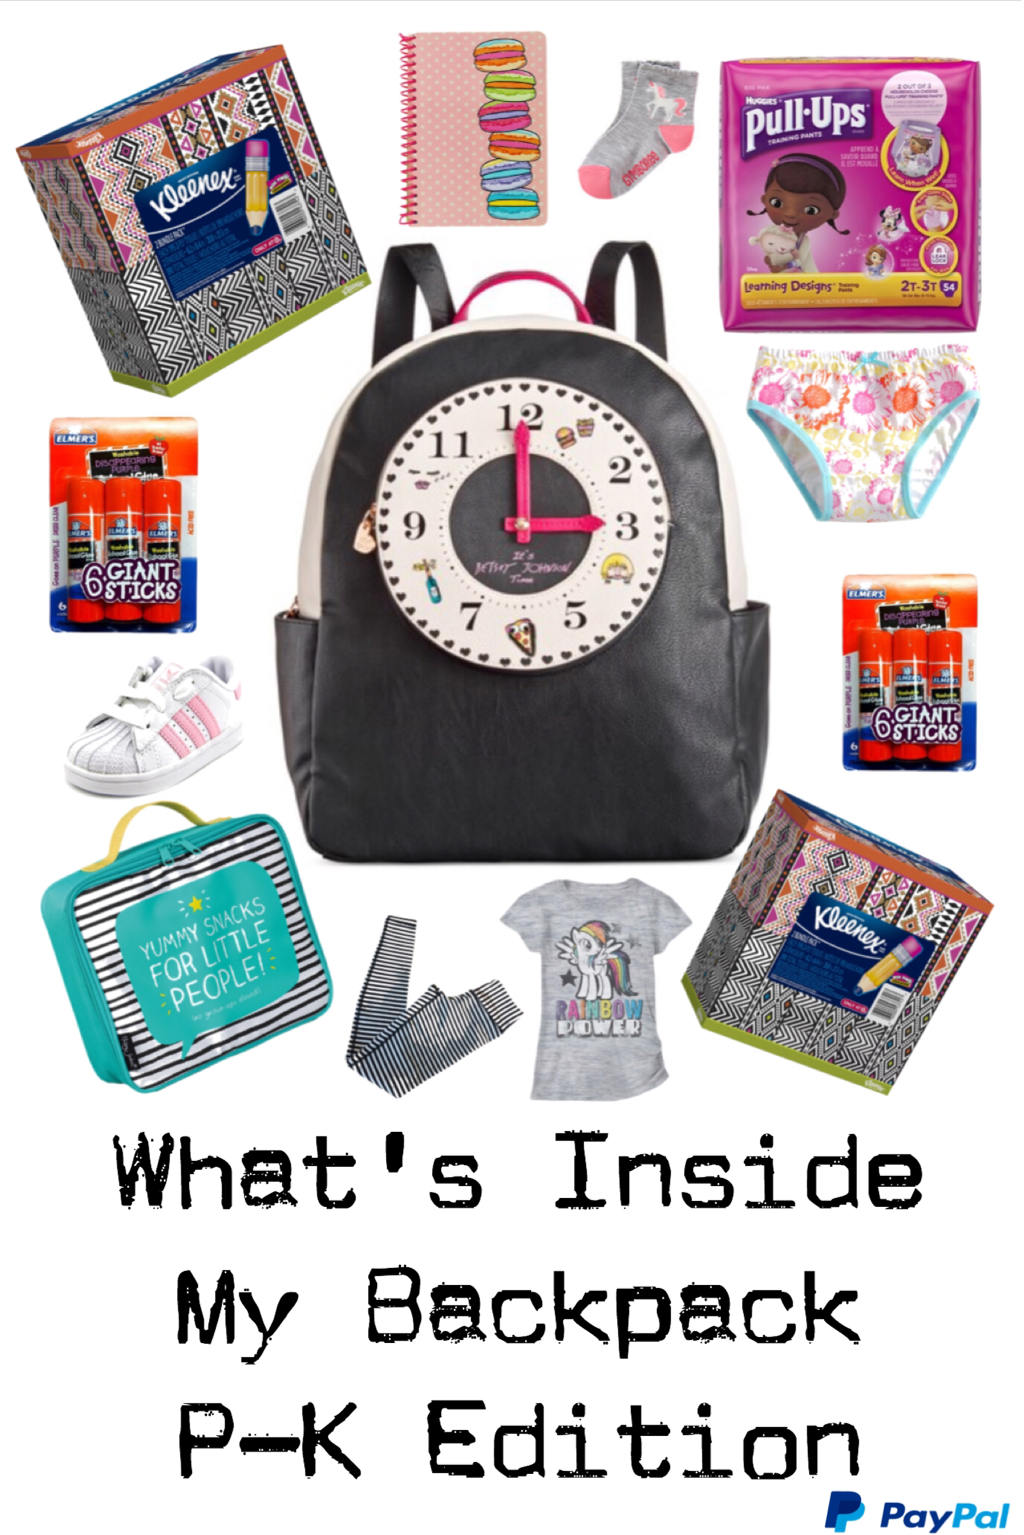 WHAT'S INSIDE MY BACKPACK ~ PRE-K EDITION #PayPalIt #CG #ad